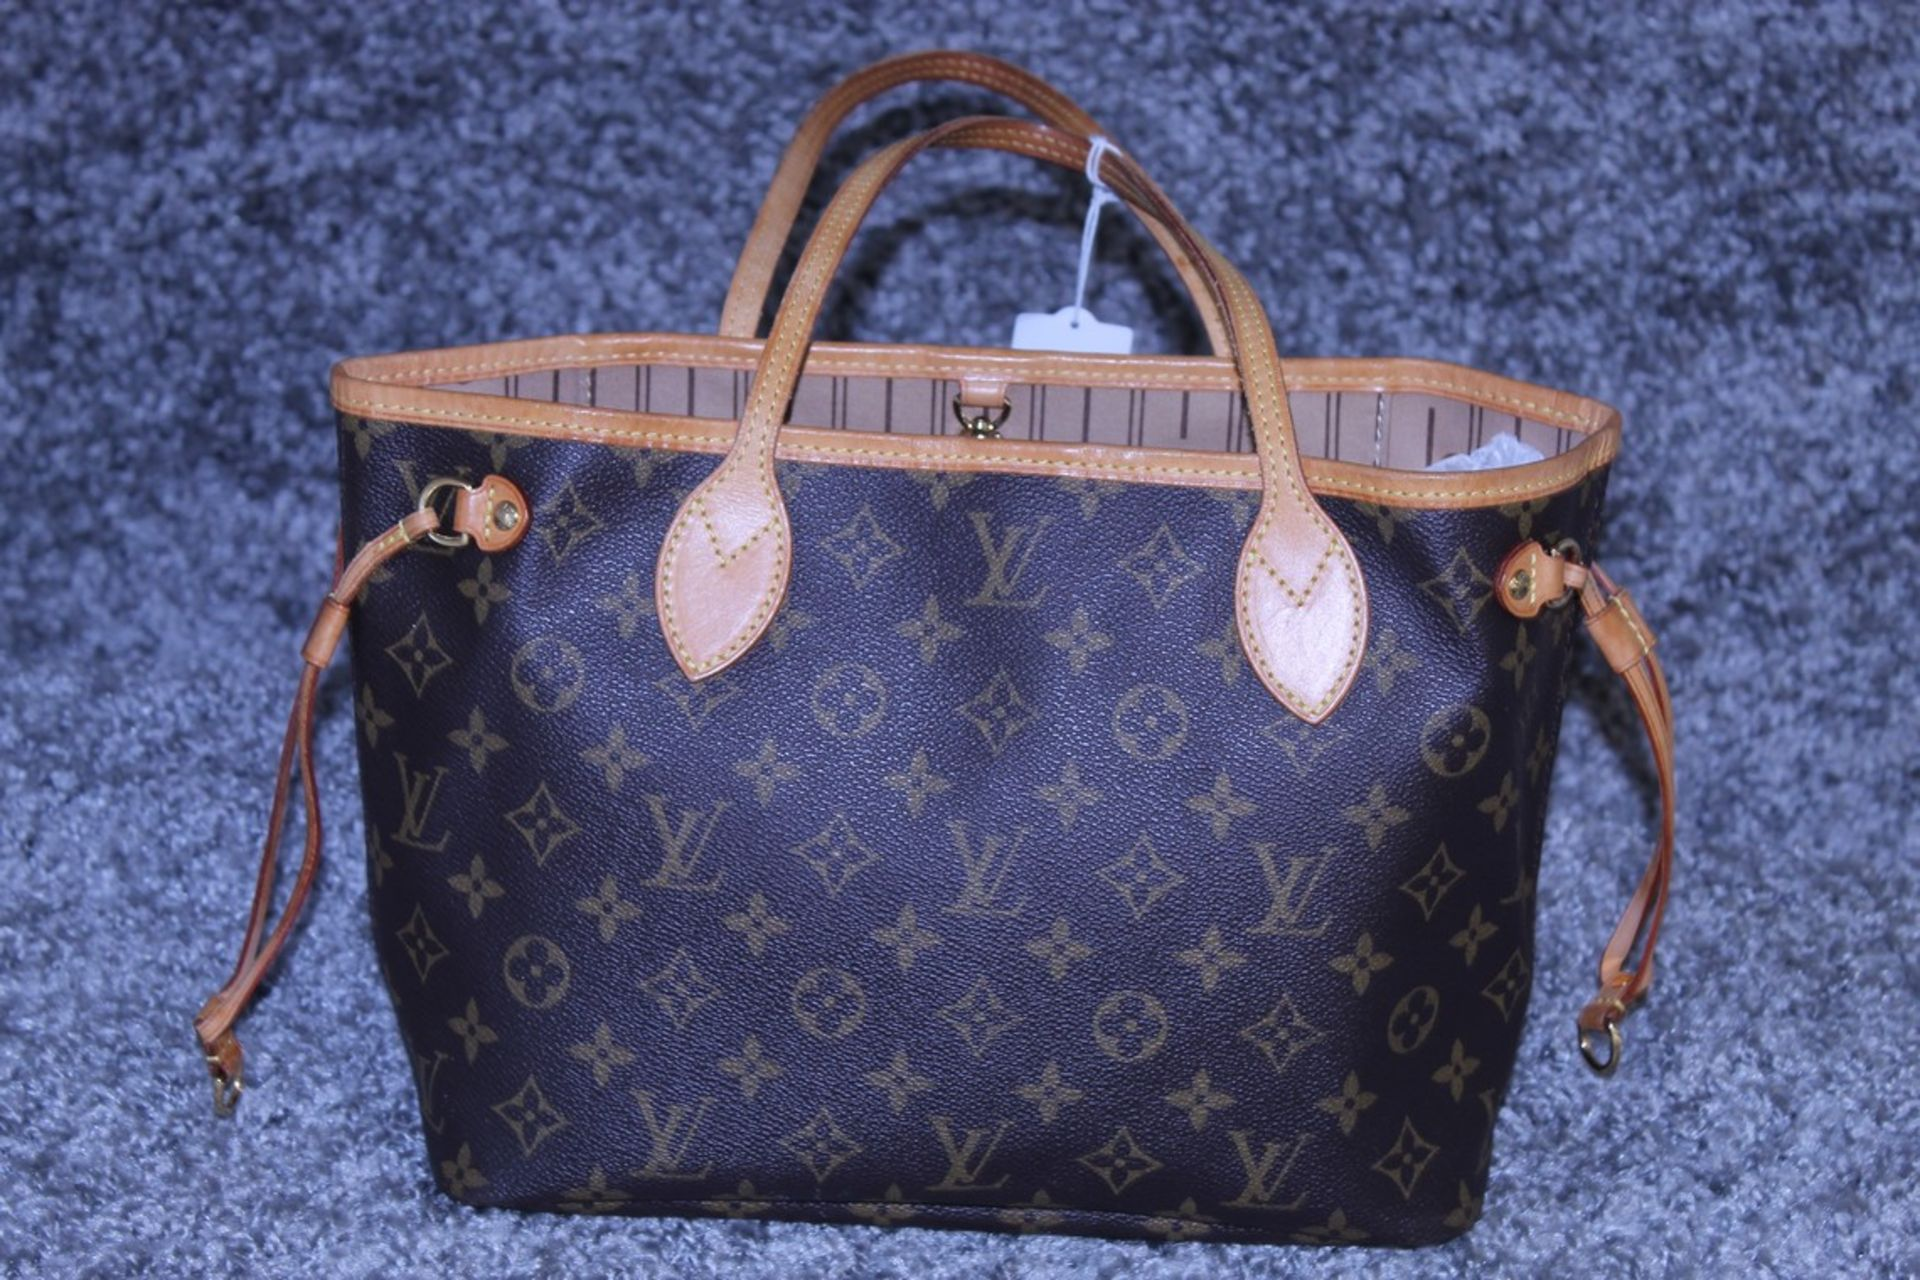 RRP £1500 Louis Vuitton Neverfull Handbag In Brown Coated Monogram Canvas With Vachetta Handle ( - Image 2 of 3